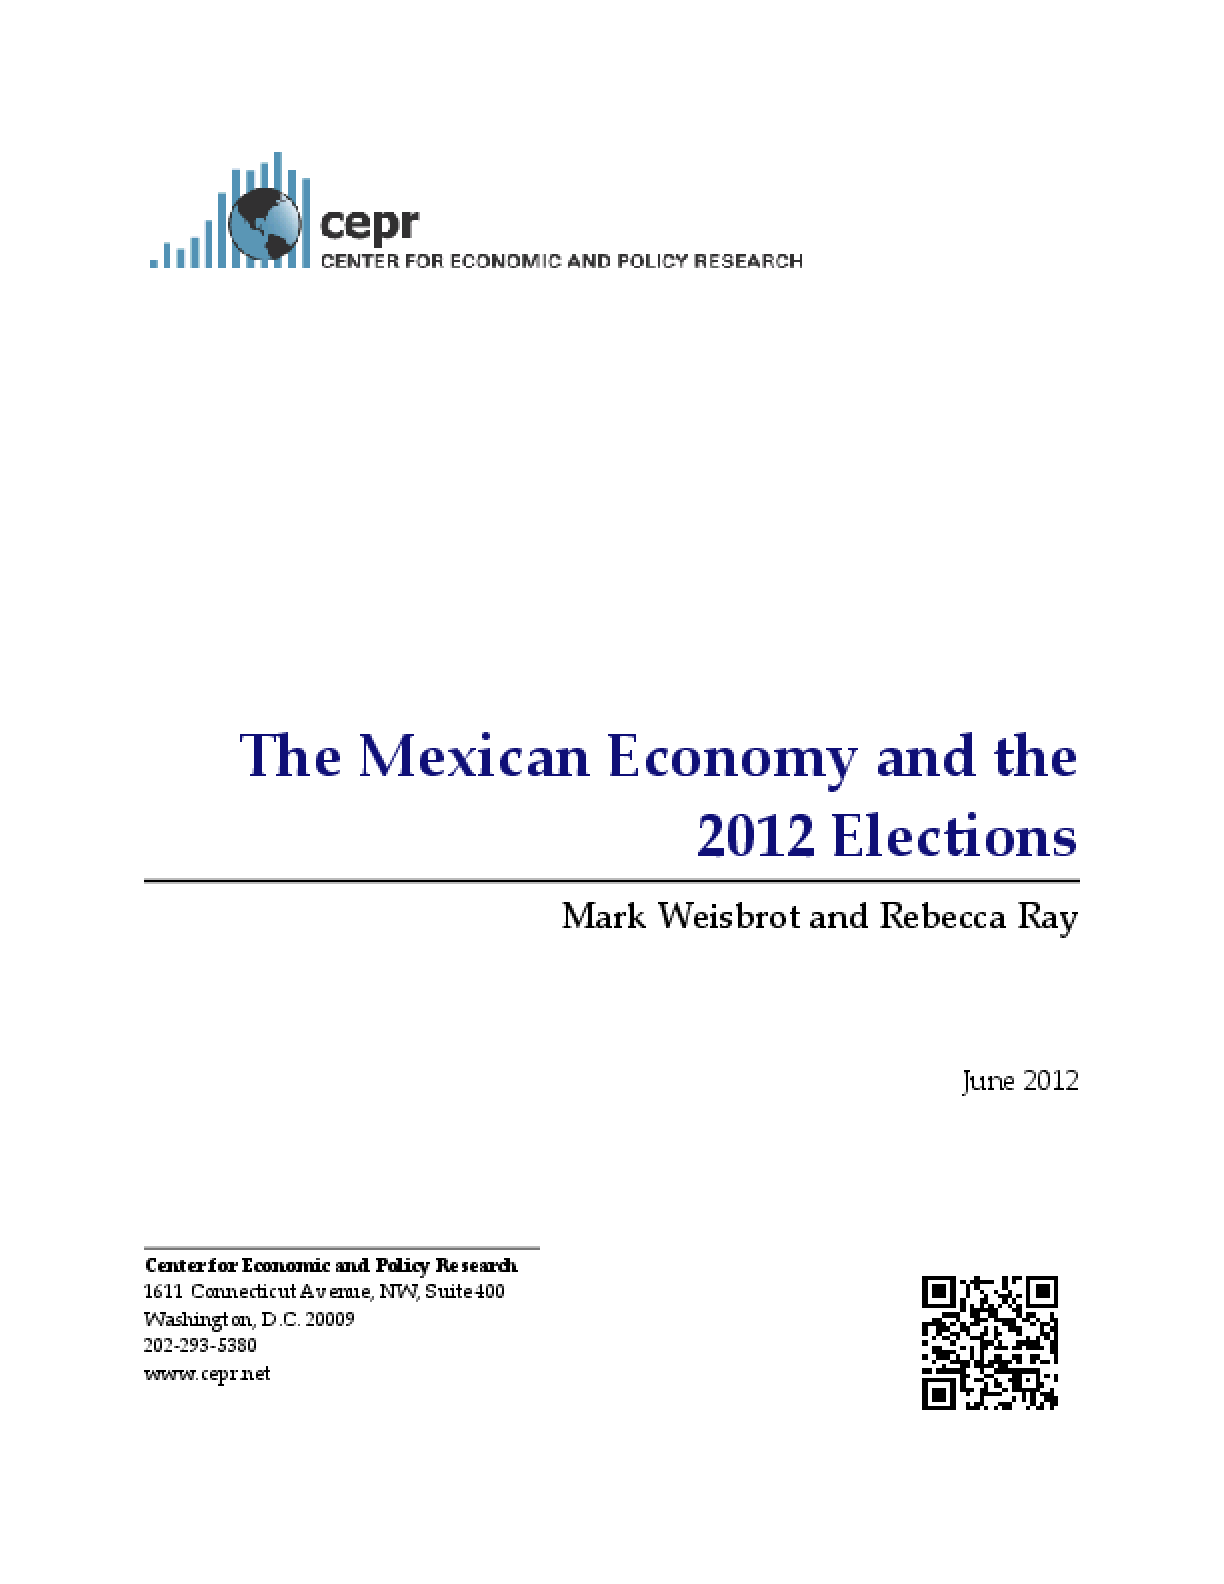 The Mexican Economy and the 2012 Elections